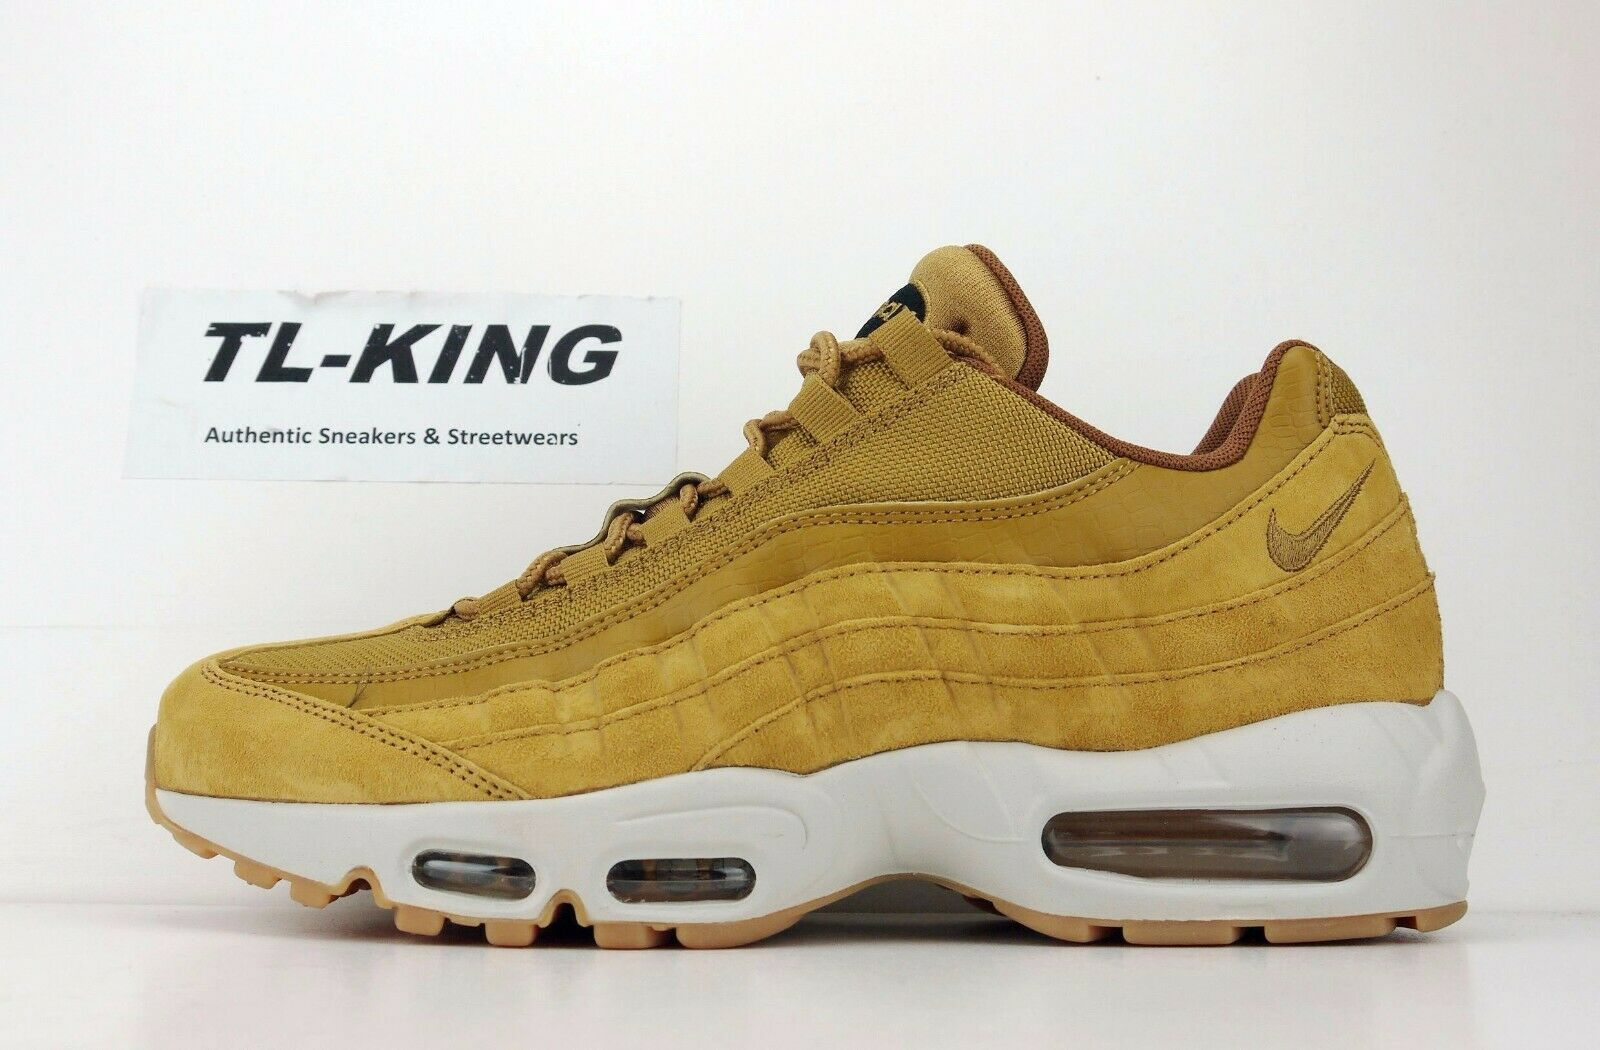 Nike Air Max Max Max 95 SE Wheat Light Bone Black AJ2018 700 AL c41dee